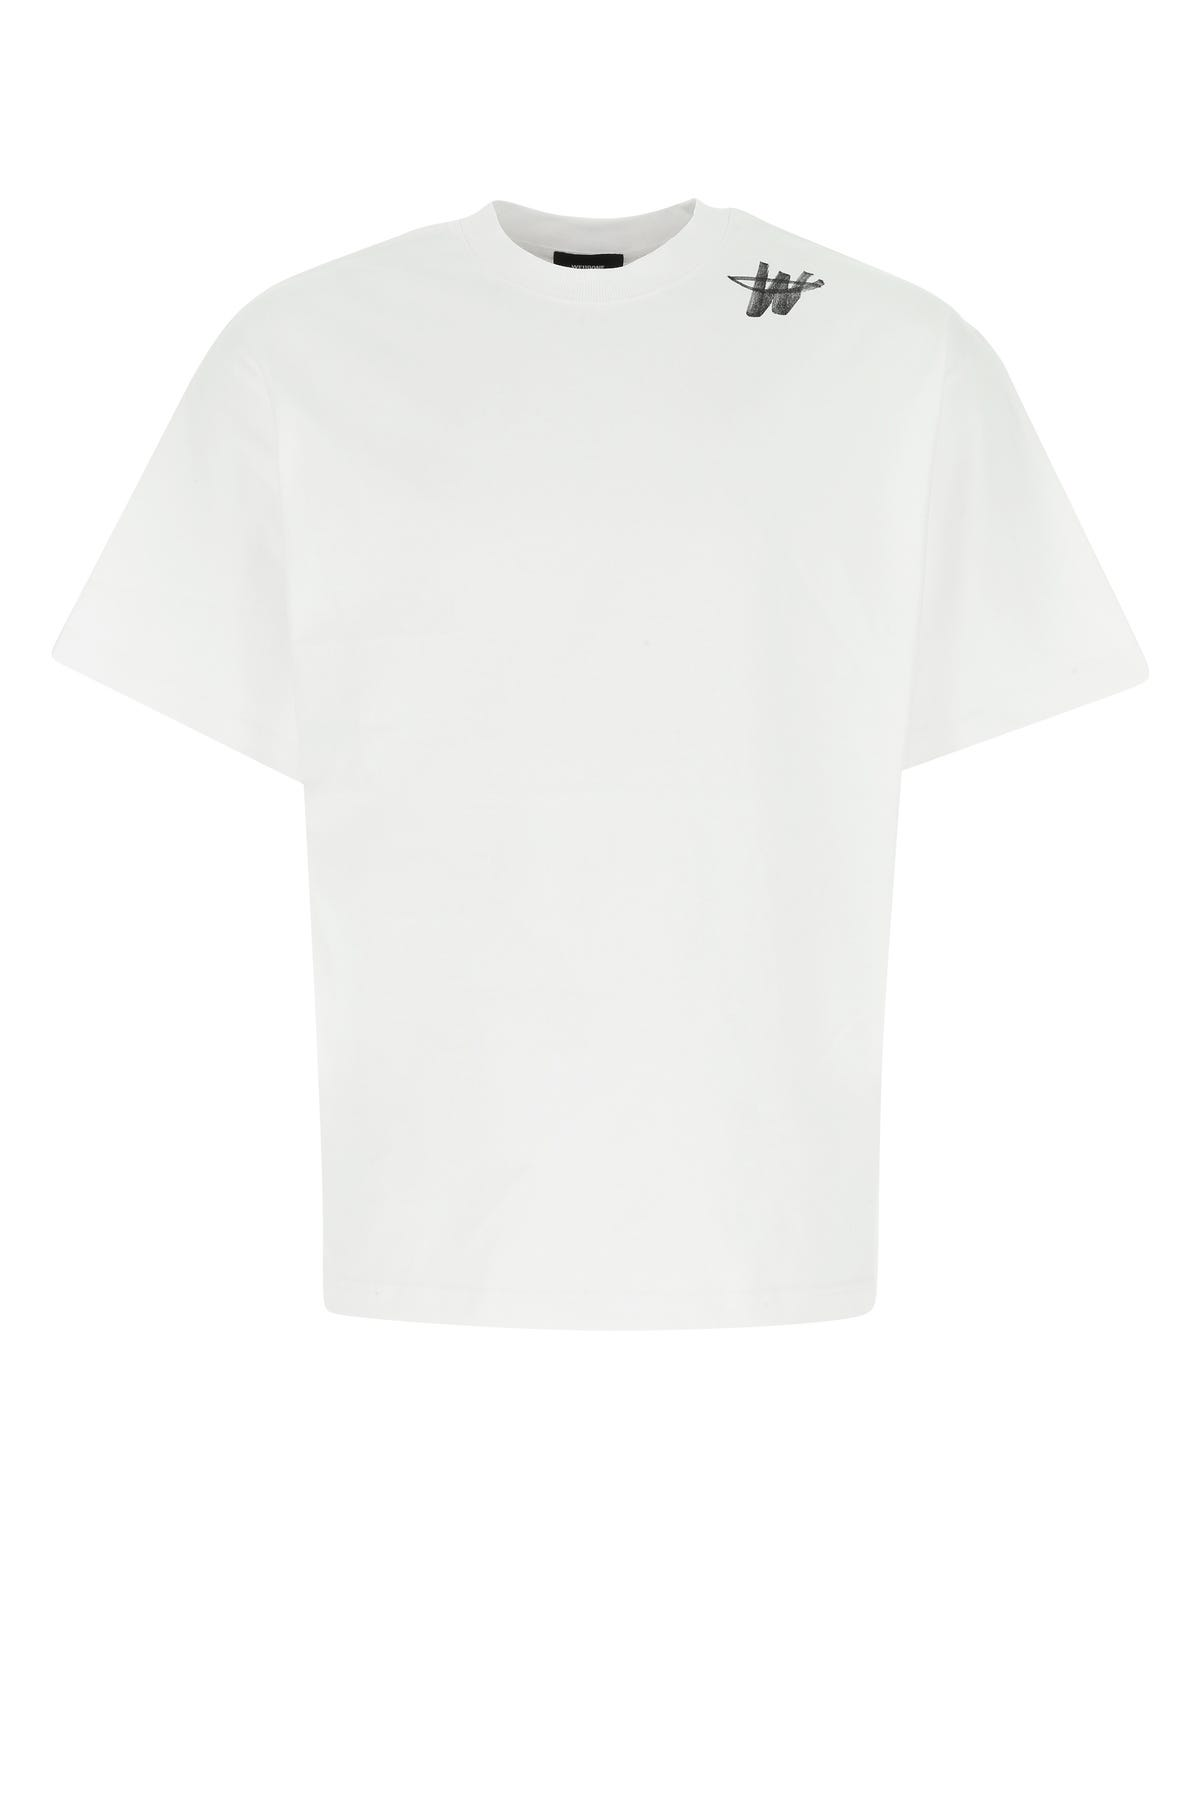 Well Done White Cotton T-shirt  White  Uomo S